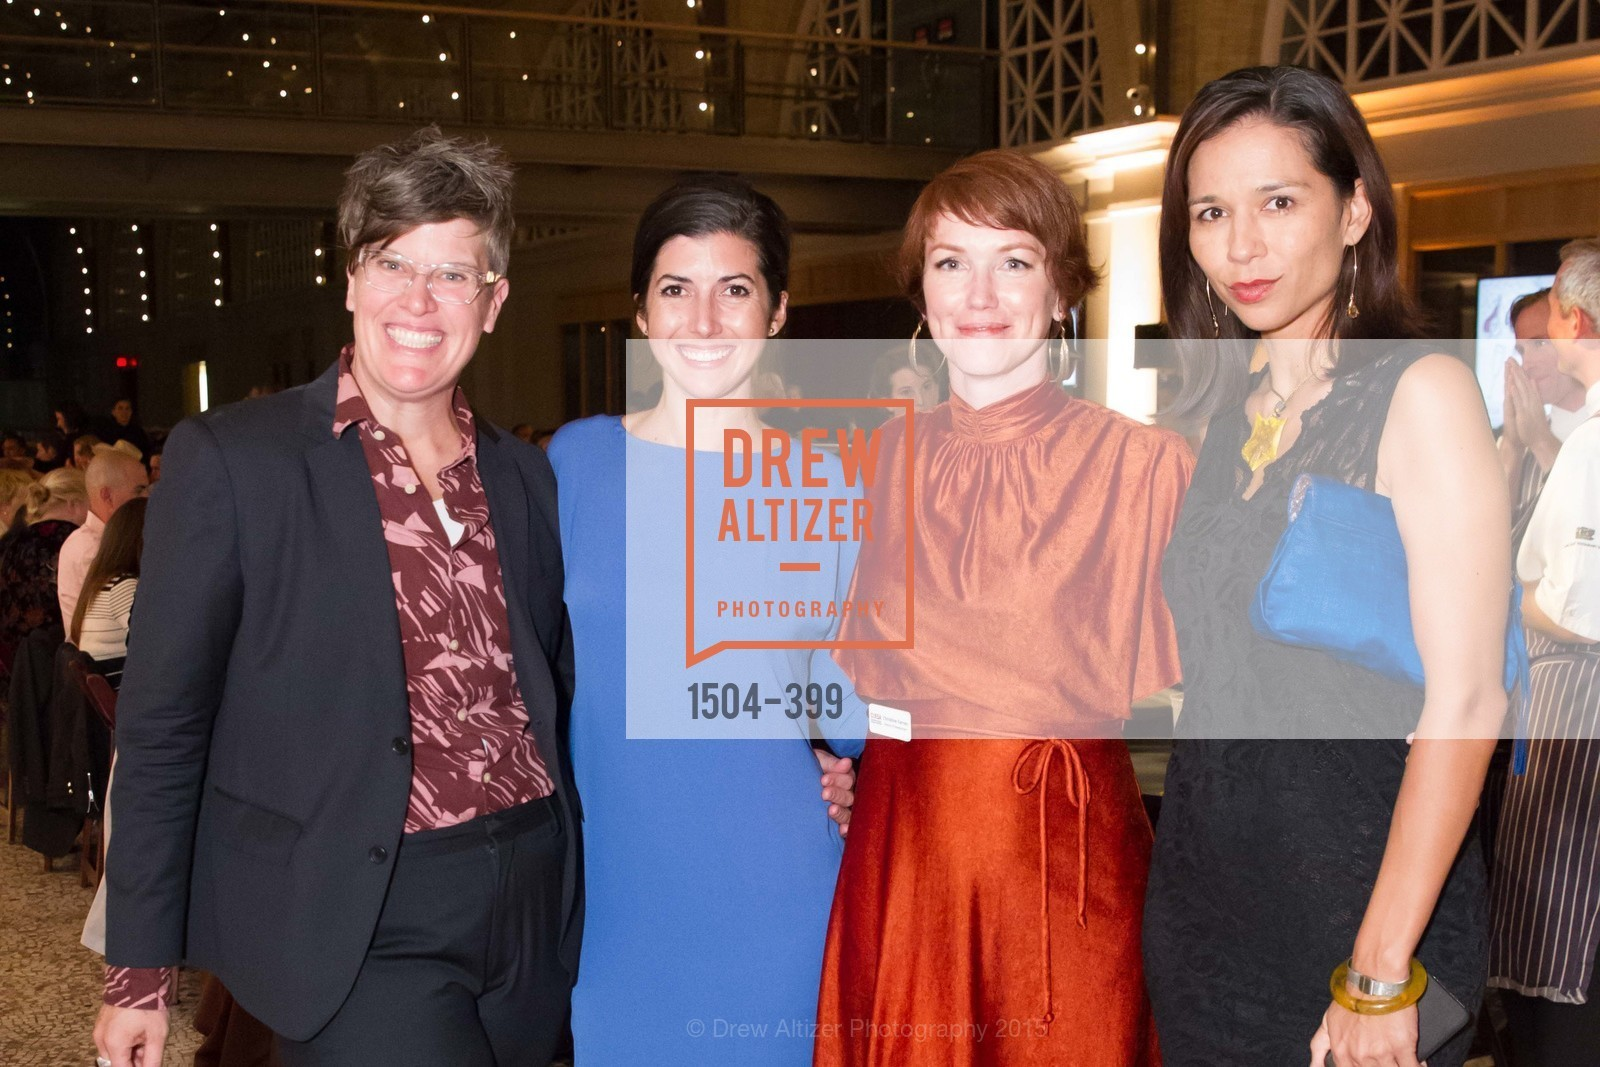 Marcy Coburn, Maggie Engebretson, Christine Farren, Malie Moran, CUESA's Sunday Supper: A Farm to City Feast, San Francisco Ferry Building, October 18th, 2015,Drew Altizer, Drew Altizer Photography, full-service agency, private events, San Francisco photographer, photographer california